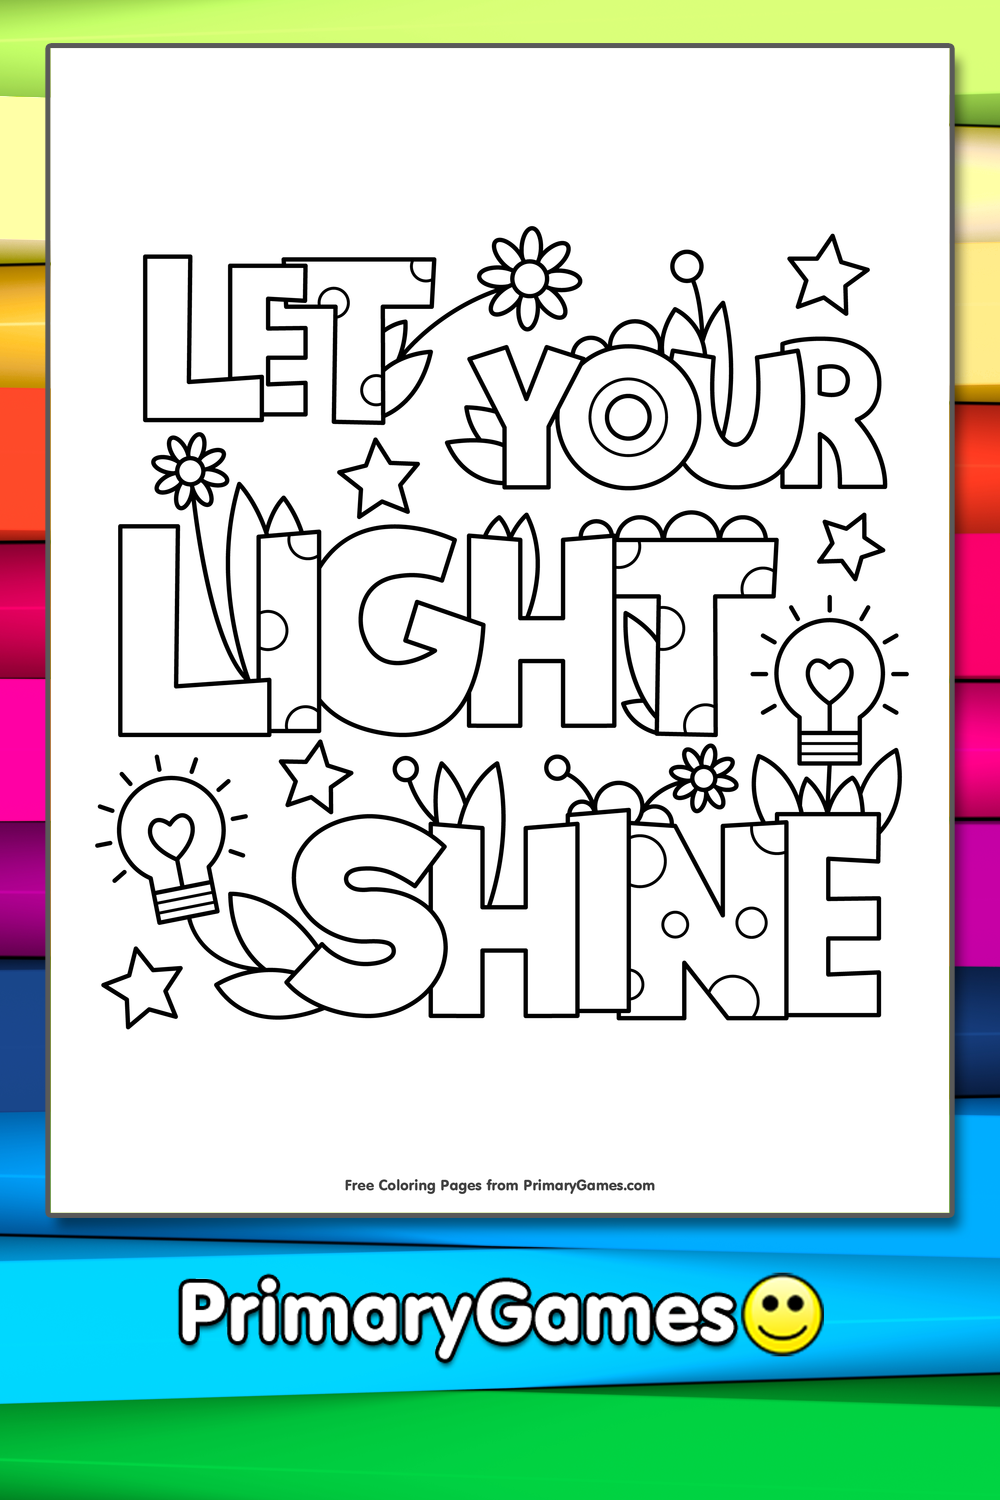 Let Your Light Shine Coloring Page Printable Positive Messages